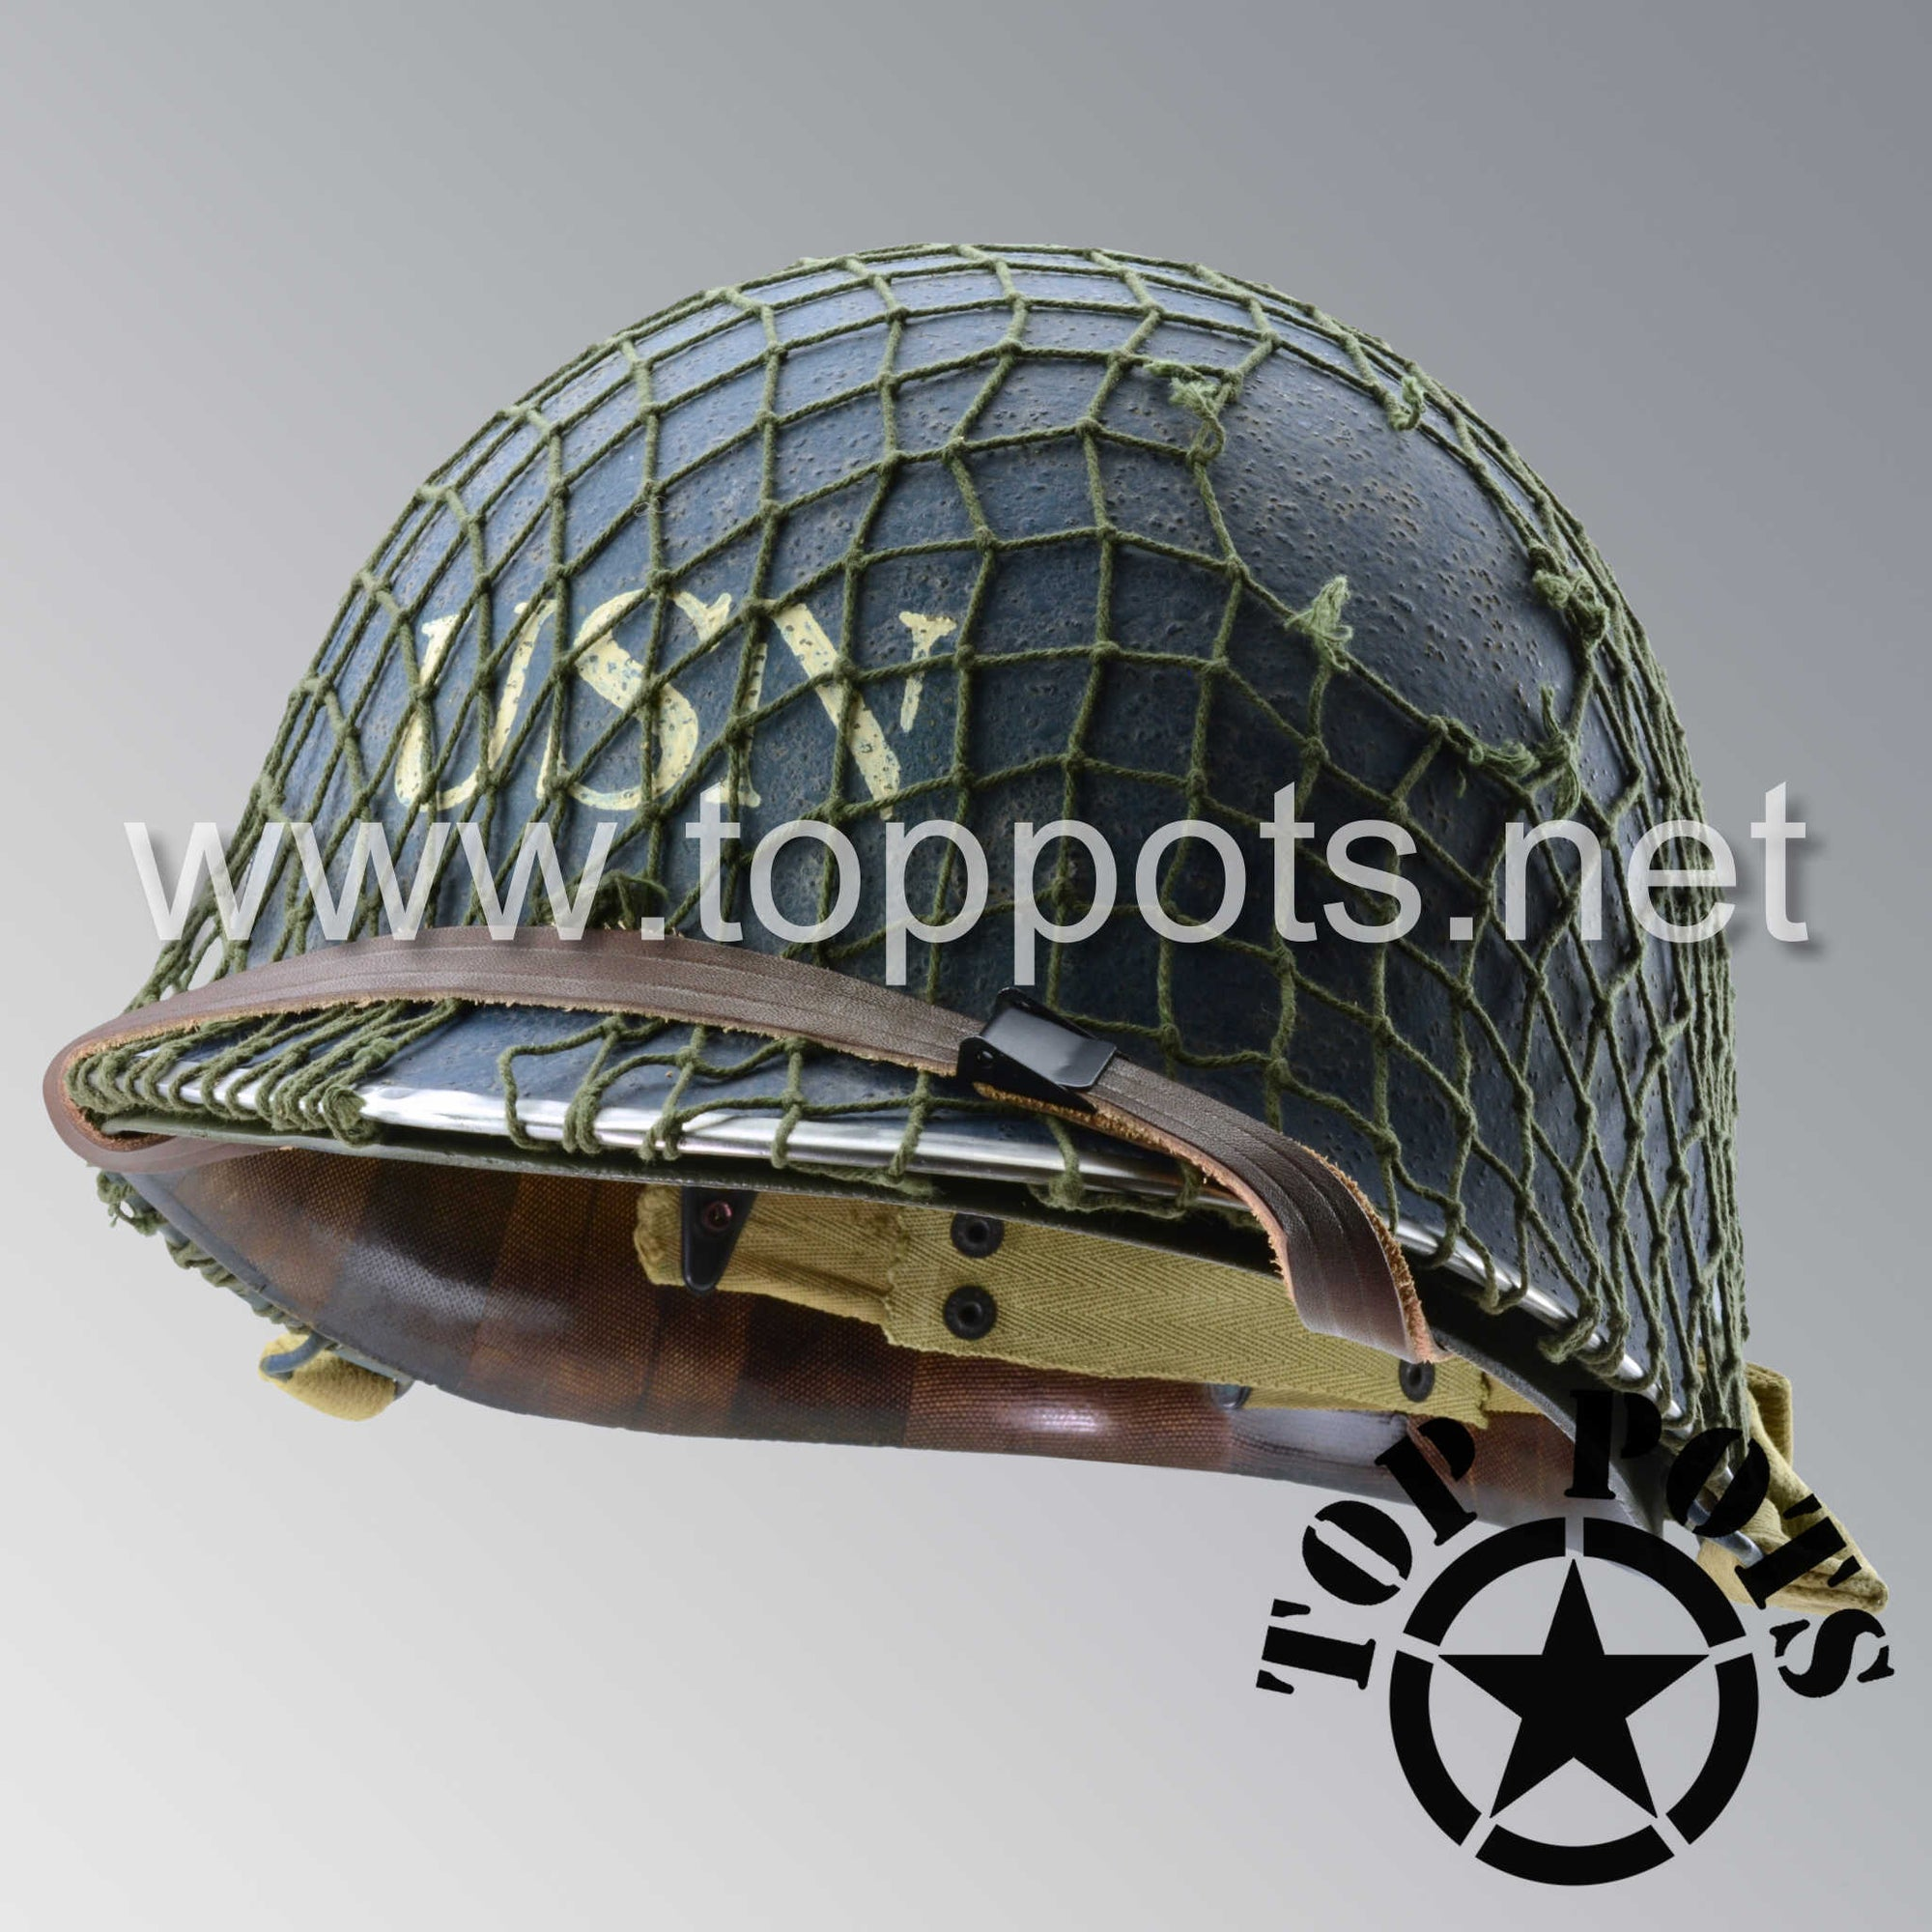 Image 1 of WWII US Aged Original M1 Infantry Helmet Swivel Bale Shell and Liner with USN Navy Emblem